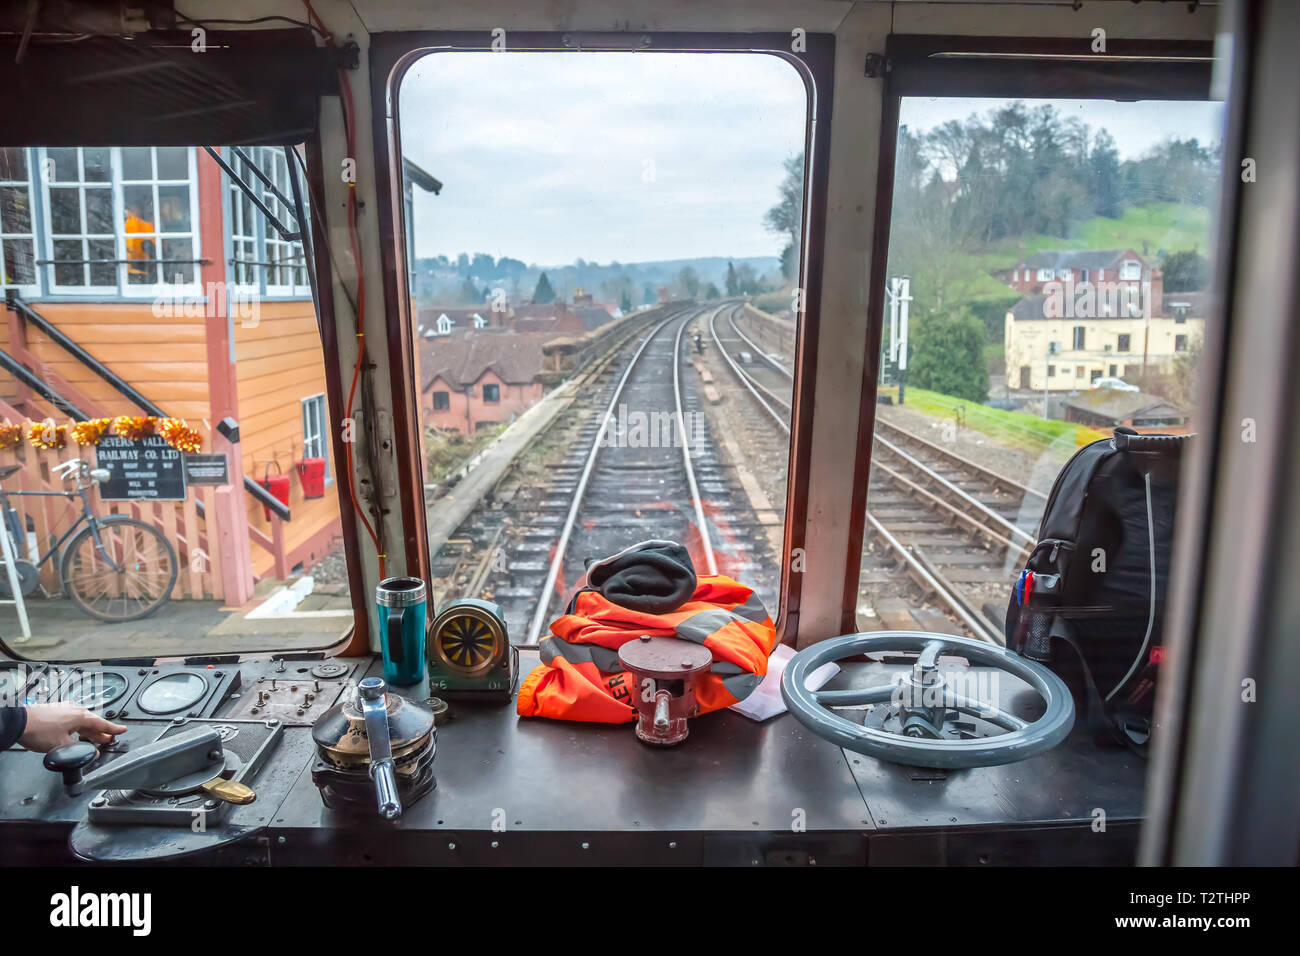 At the controls. Train driver's view through front window of moving diesel train on heritage railway line. Leaving vintage station. Stock Photo